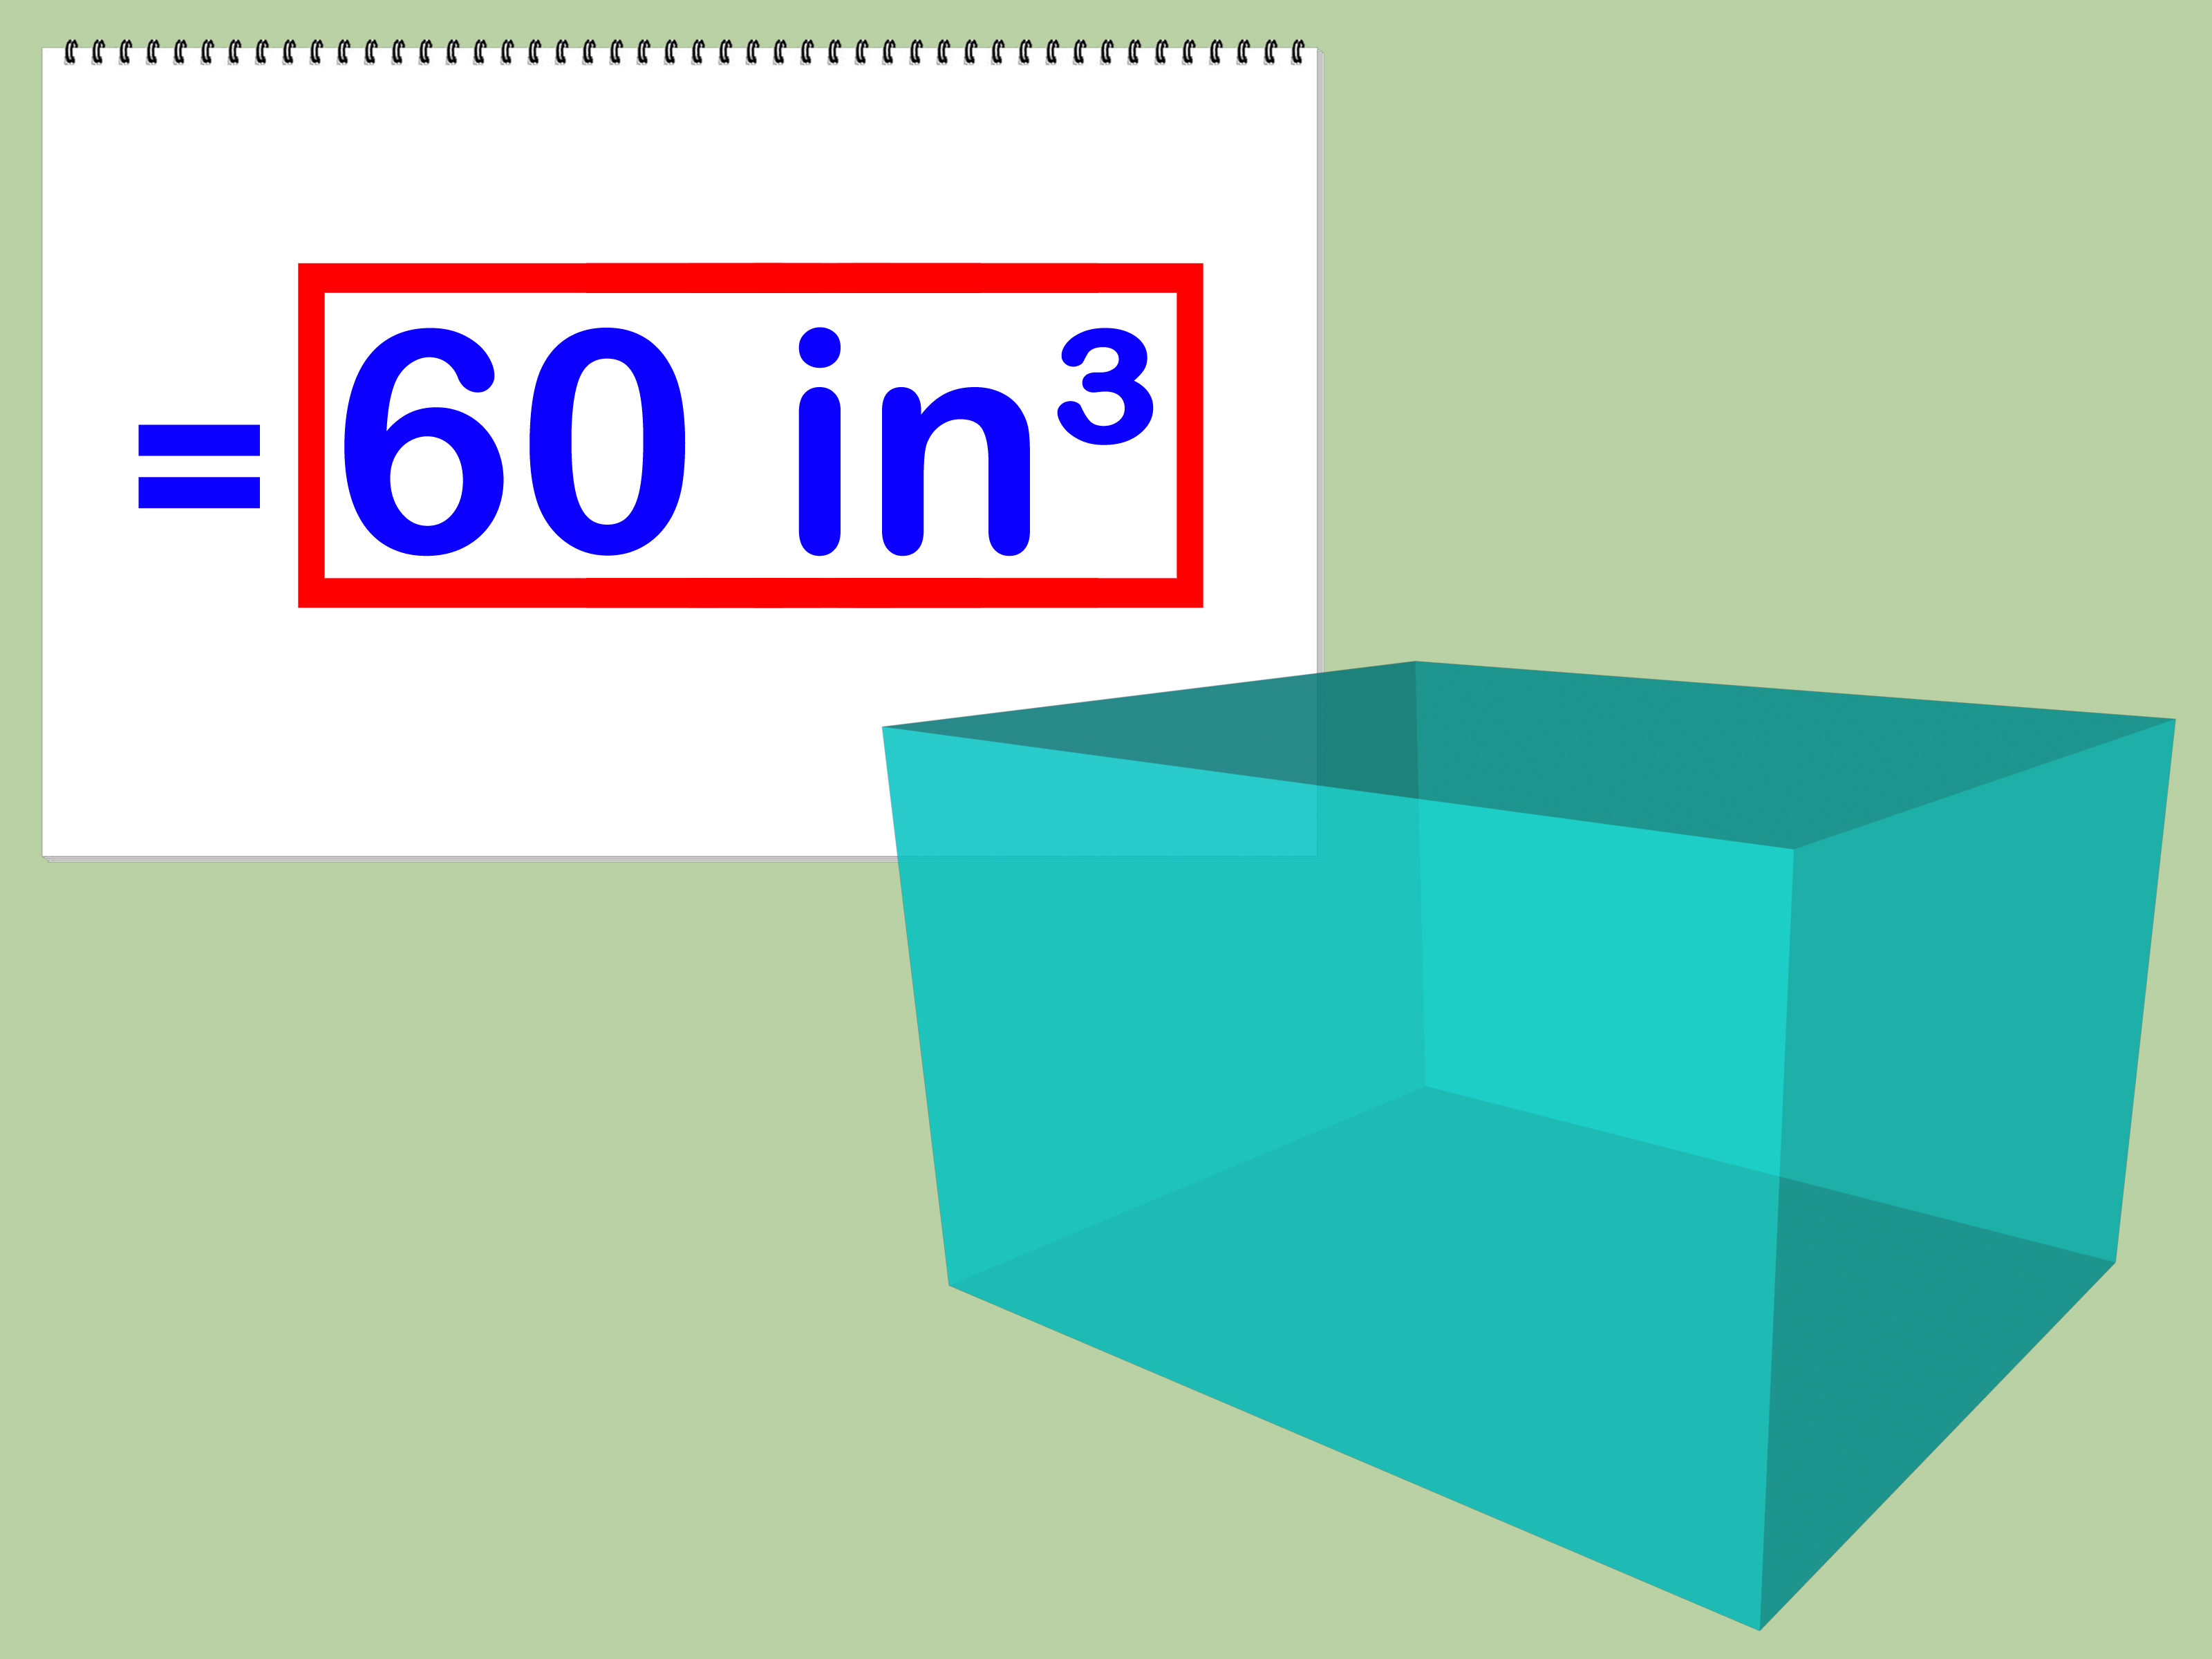 How To Calculate The Volume Of A Rectangular Prism 5 Steps